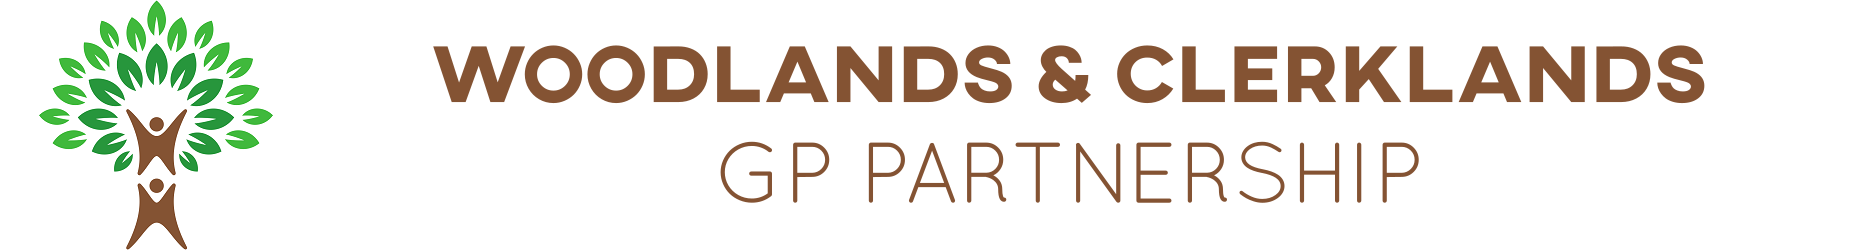 Woodlands & Clerklands Partnership